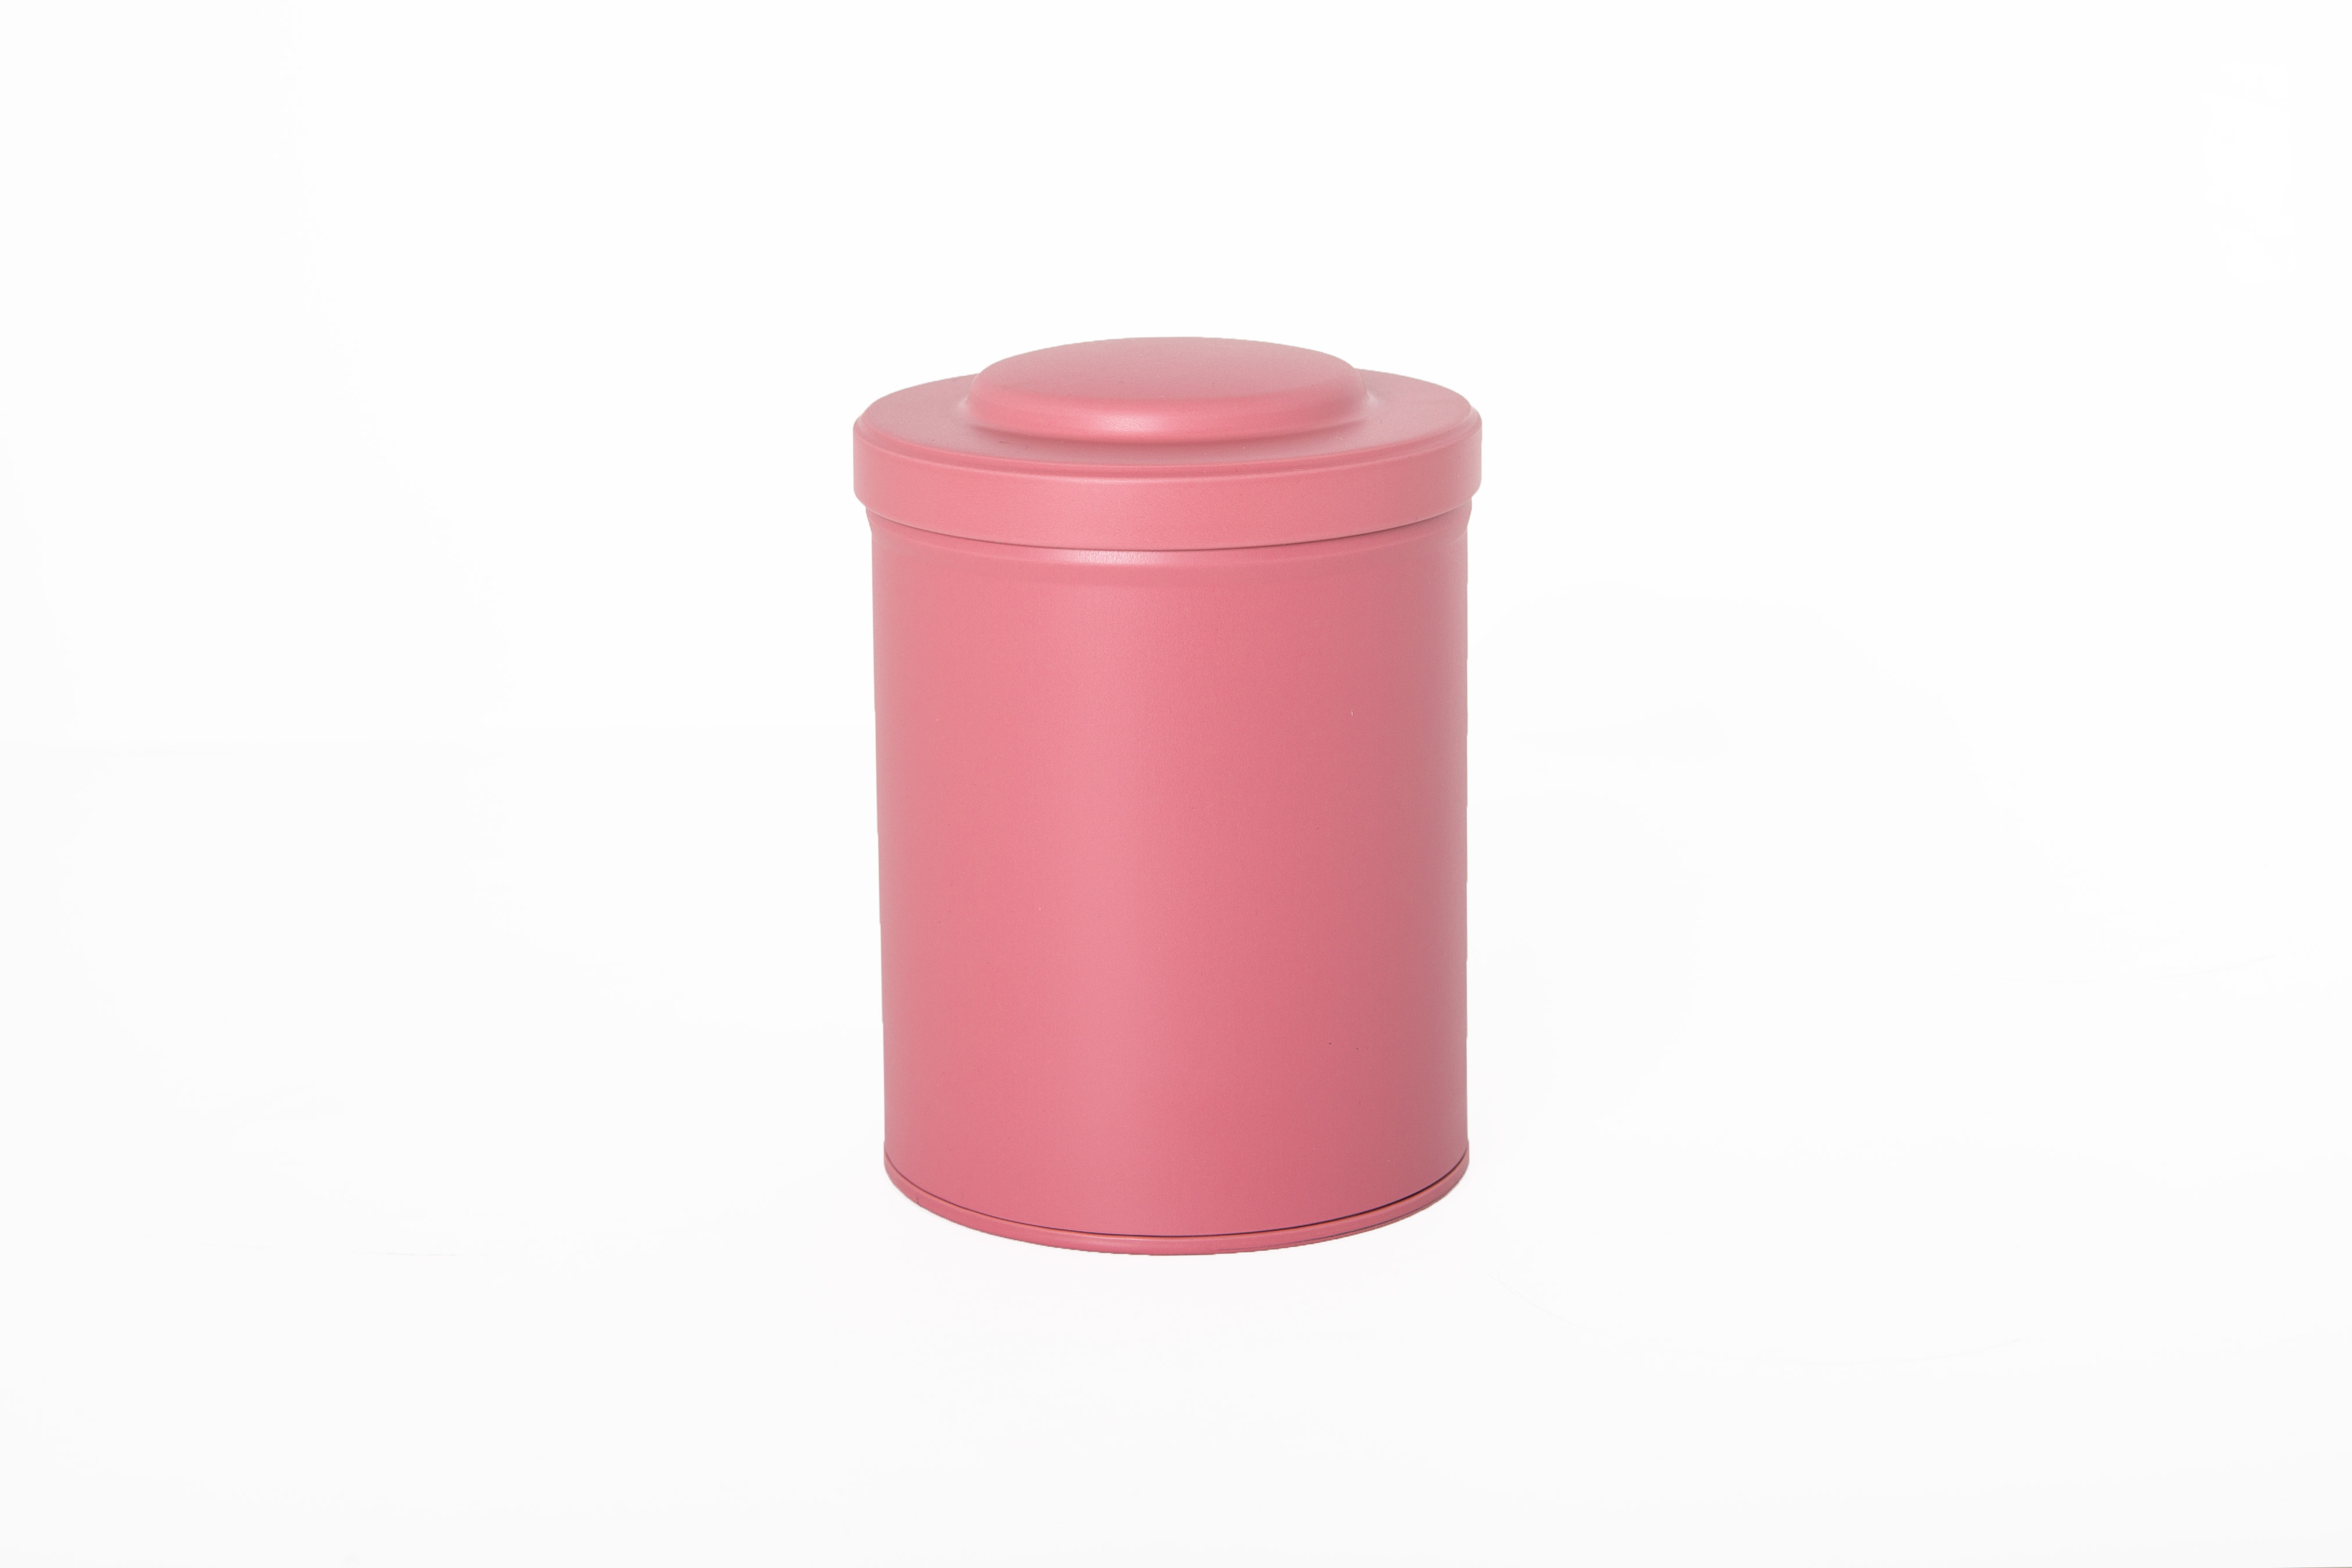 Spice - and tea tinbox with aroma seal - Pink